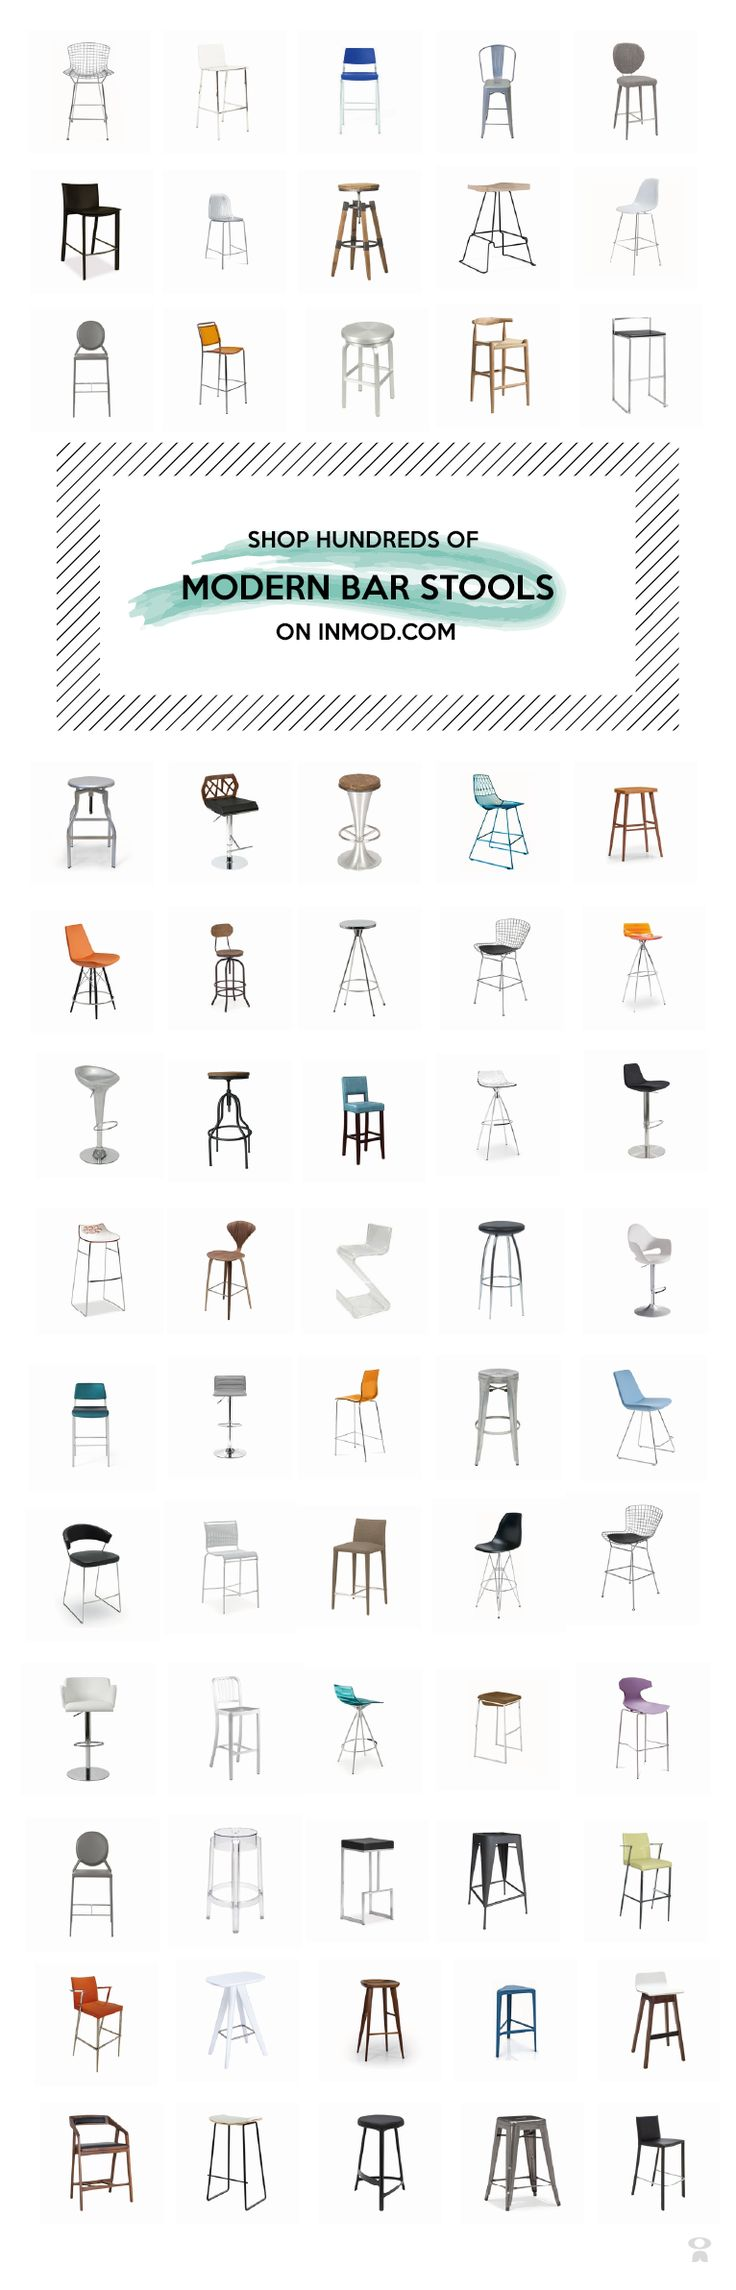 Shop hundreds of modern stools for your kitchen and bar on inmod.com !